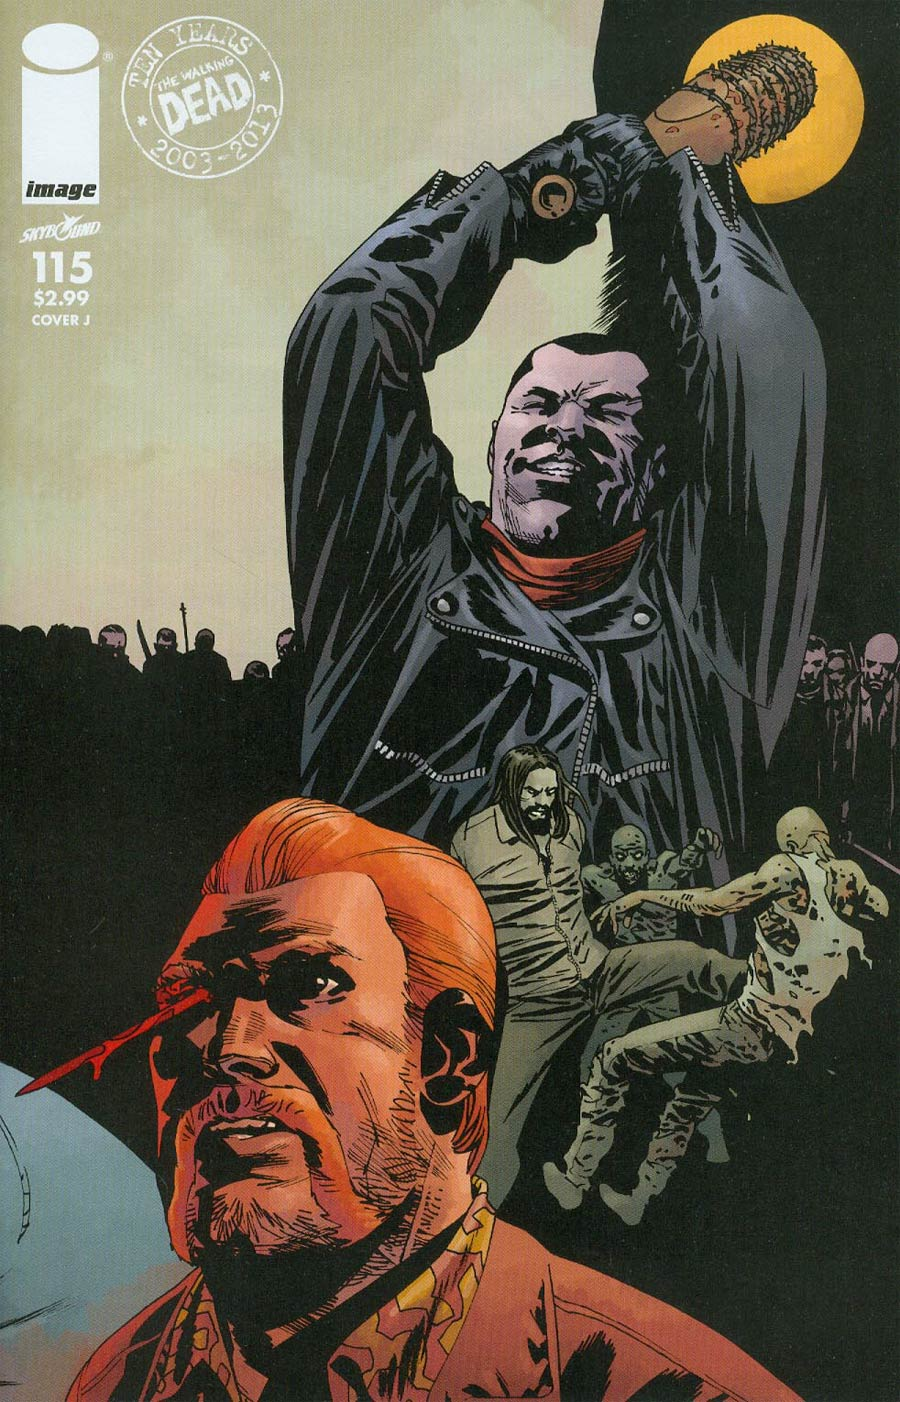 Walking Dead #115 Cover J Connecting Cover Year 9